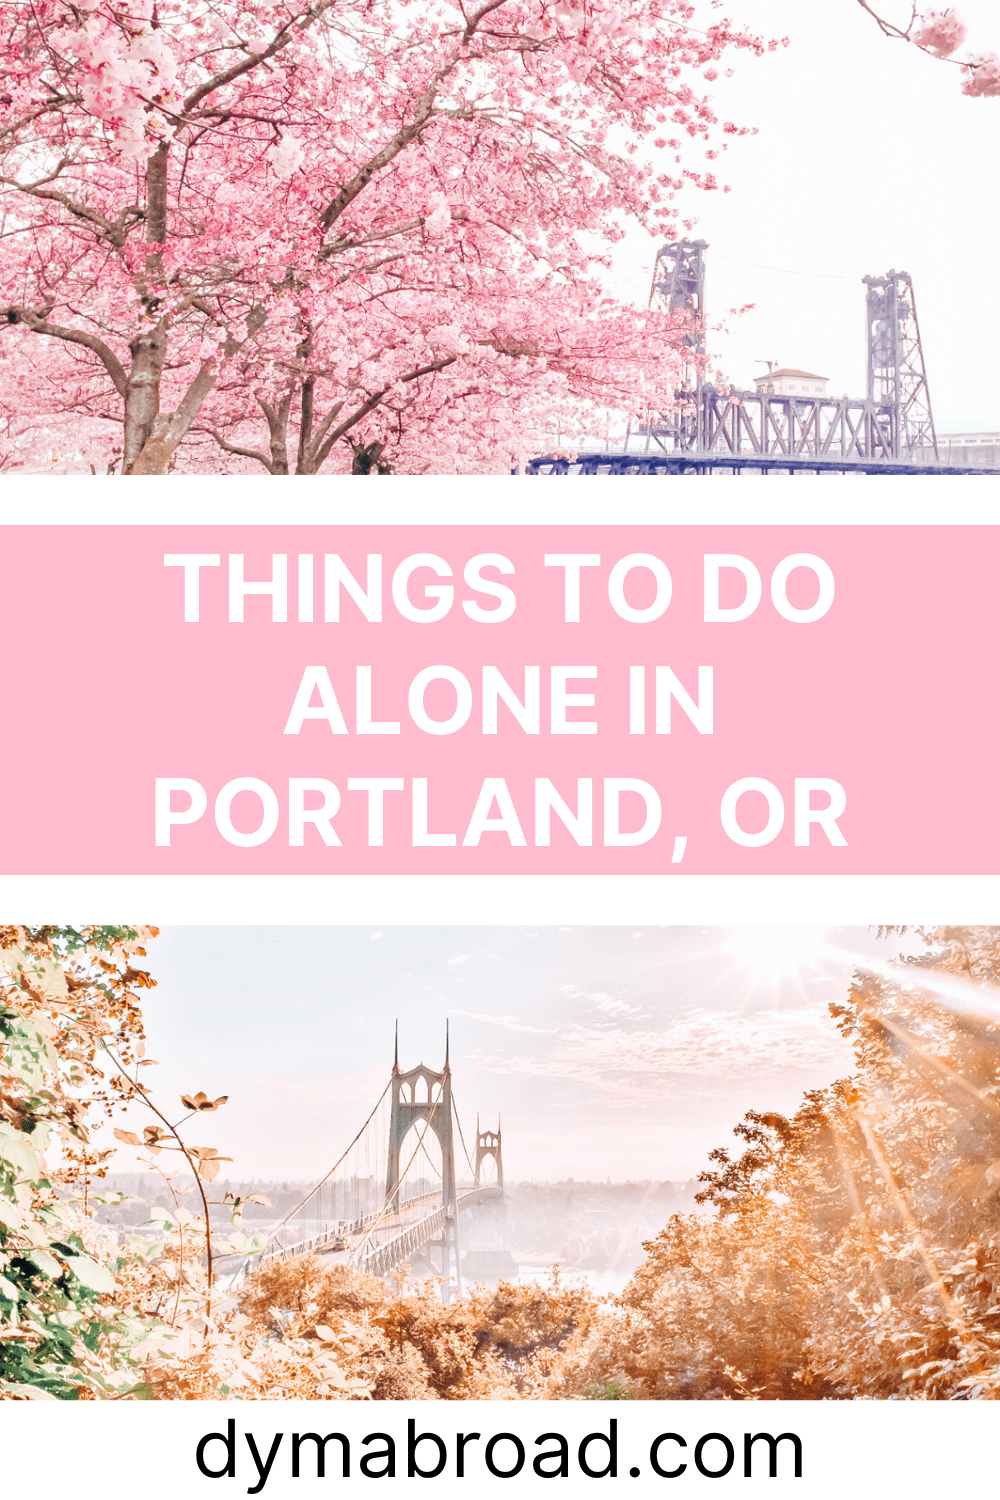 Things to do alone in Portland second Pinterest image